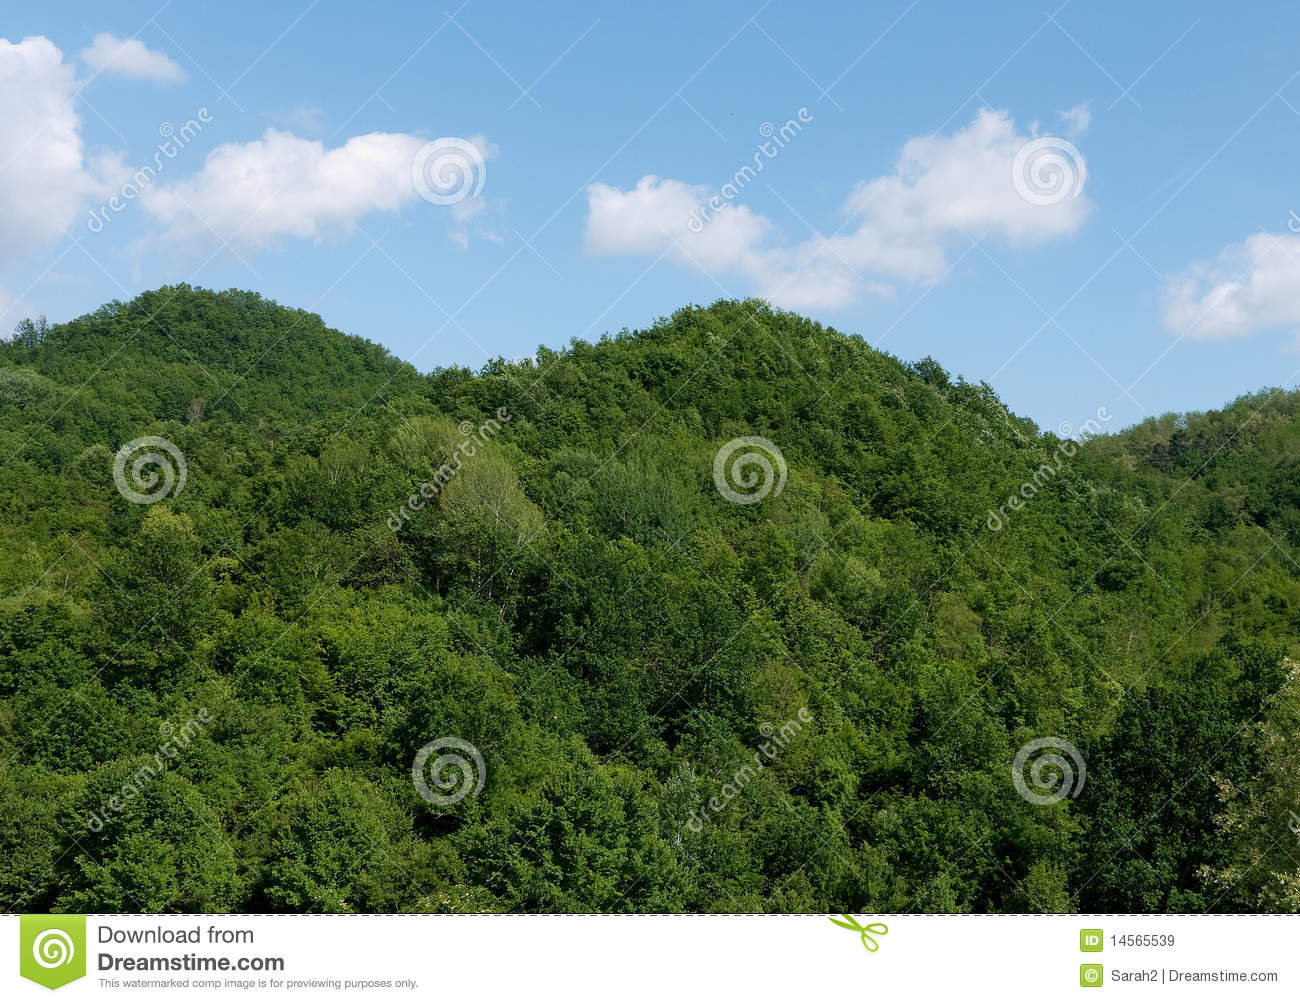 Completely Unspoilt Wooded Hillside Royalty Free Stock Images - Image ...: dreamstime.com/royalty-free-stock-images-completely-unspoilt-wooded...